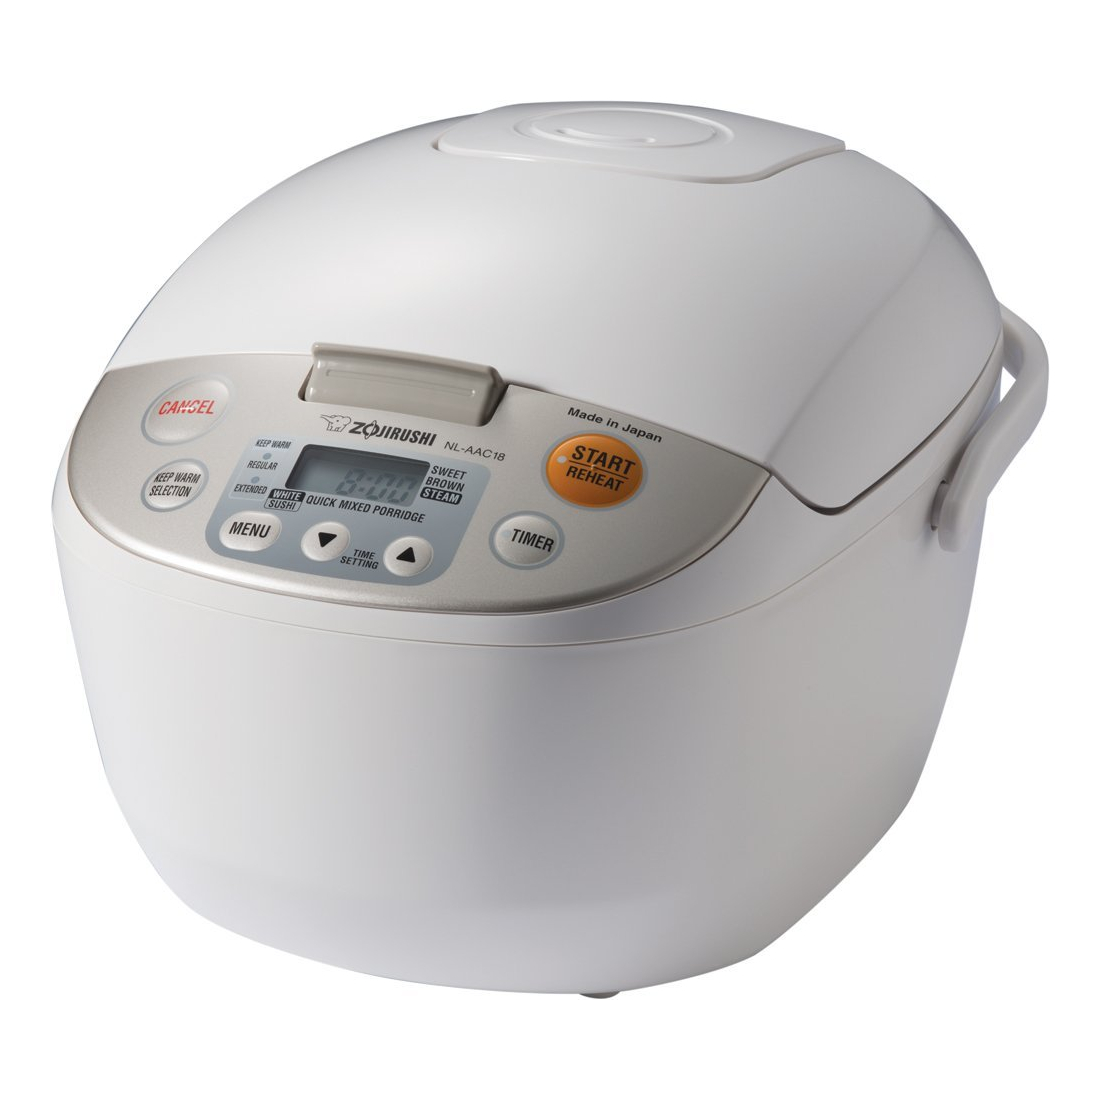 Zojirushi Micom Beige 10 Cup Rice Cooker and Warmer